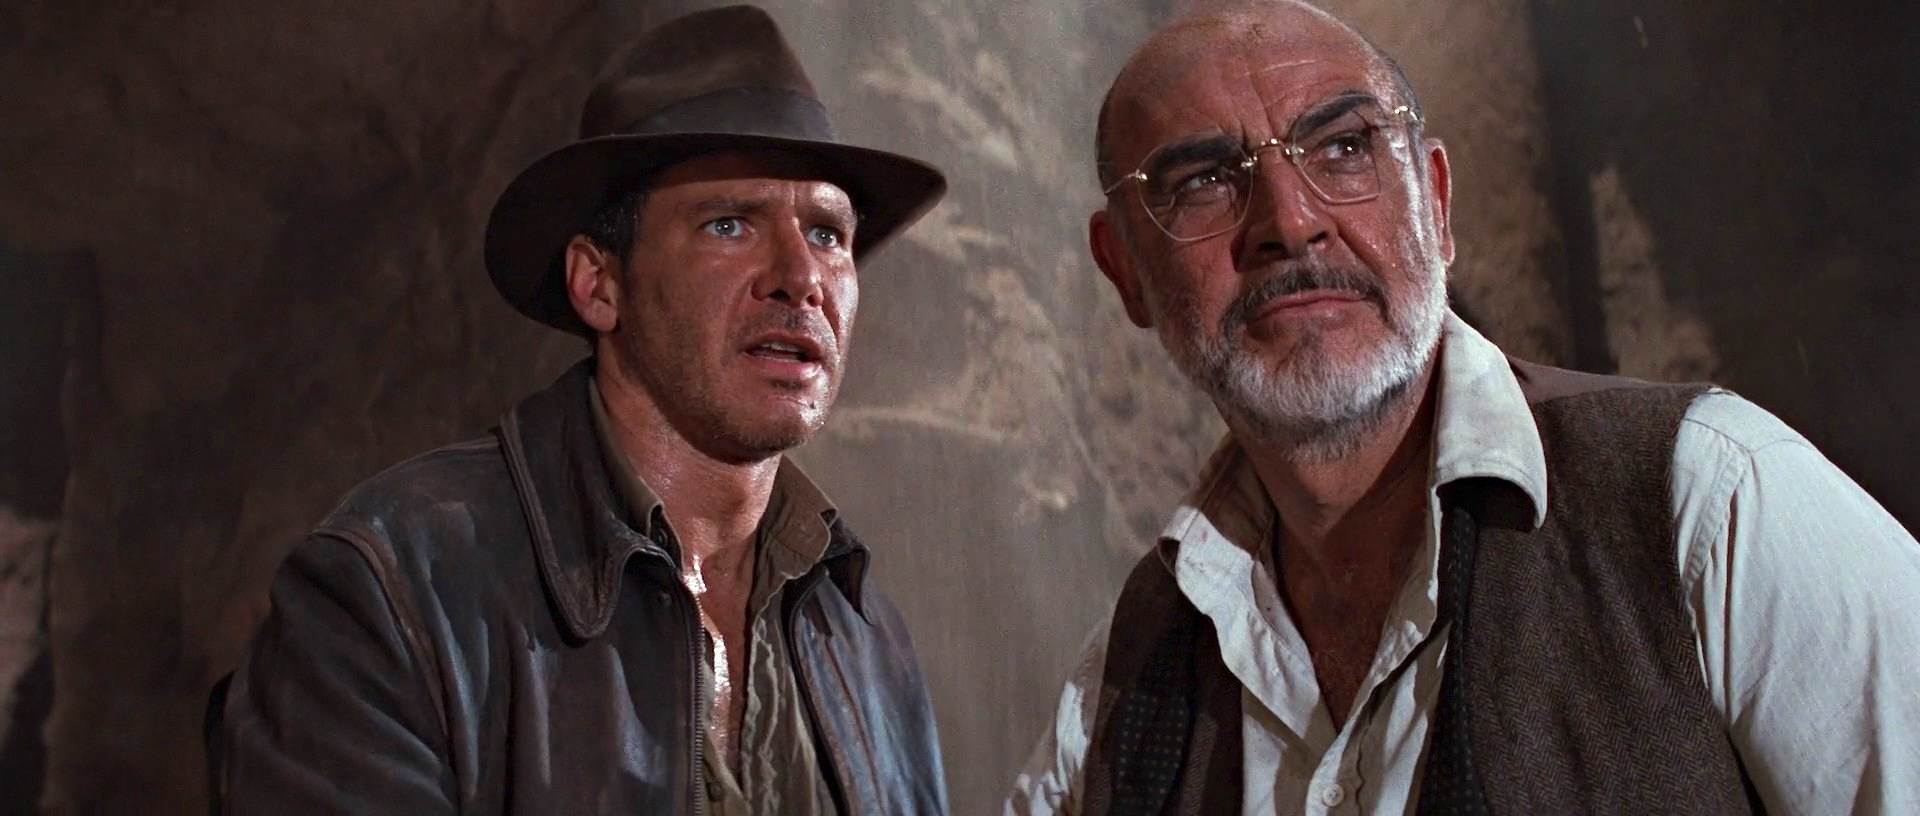 harrison ford and sean connery in indiana jones and the last crusade